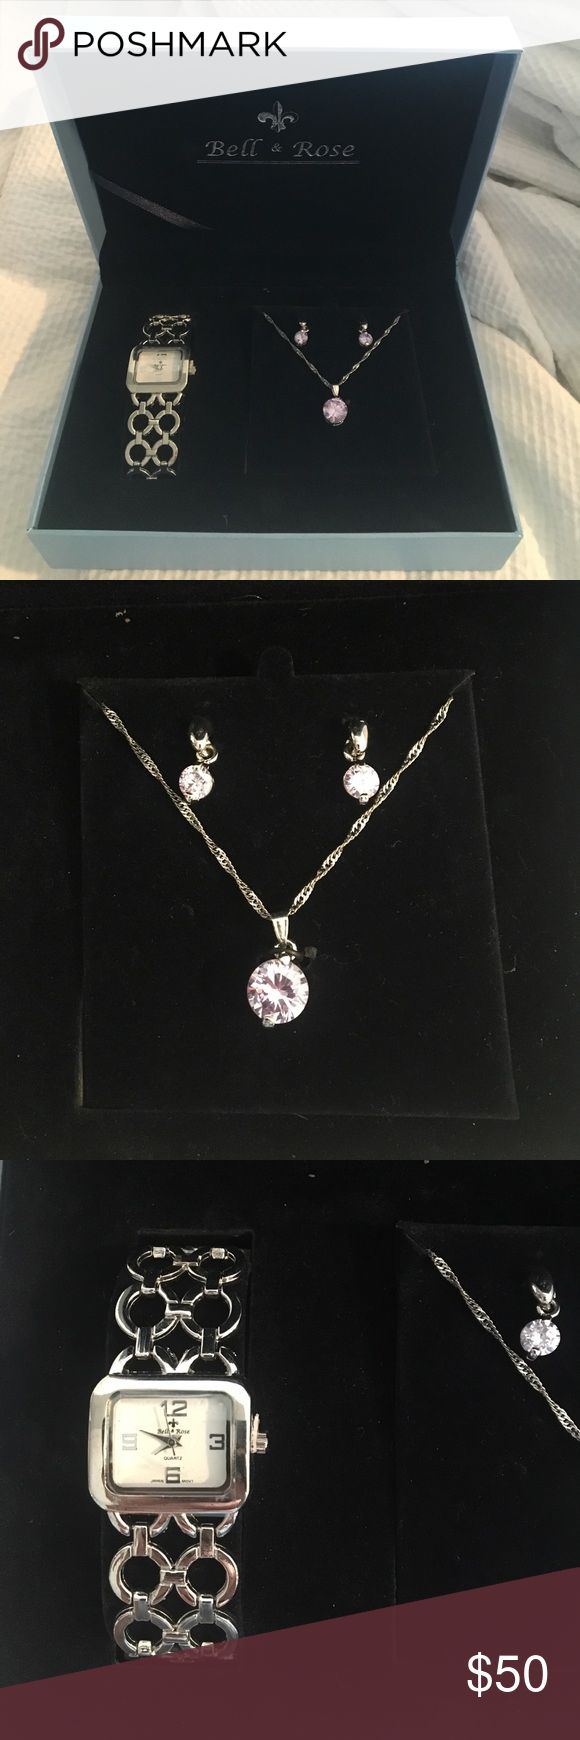 Necklace & Earrings & Watch Package! NEVER WORN! Bell & Rose authentic silver watch and purple diamond matching earrings and necklace! Never worn or used! Comes with authentic box! Bell & Rose Jewelry Necklaces